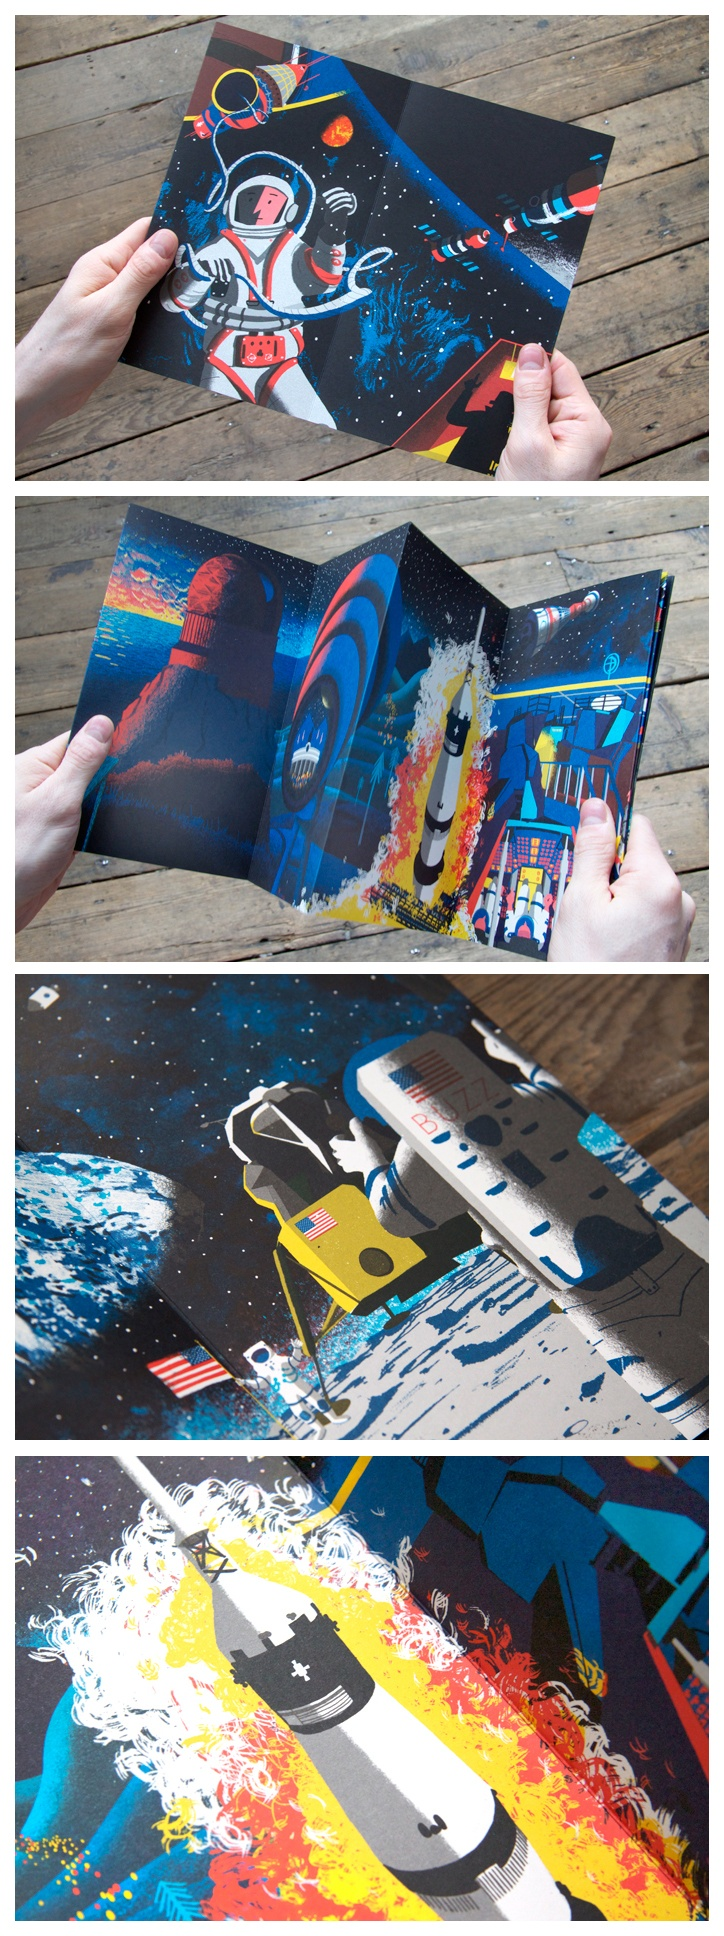 'Space Race', Tom Clohosy Cole's beautifully illustrated concertina.